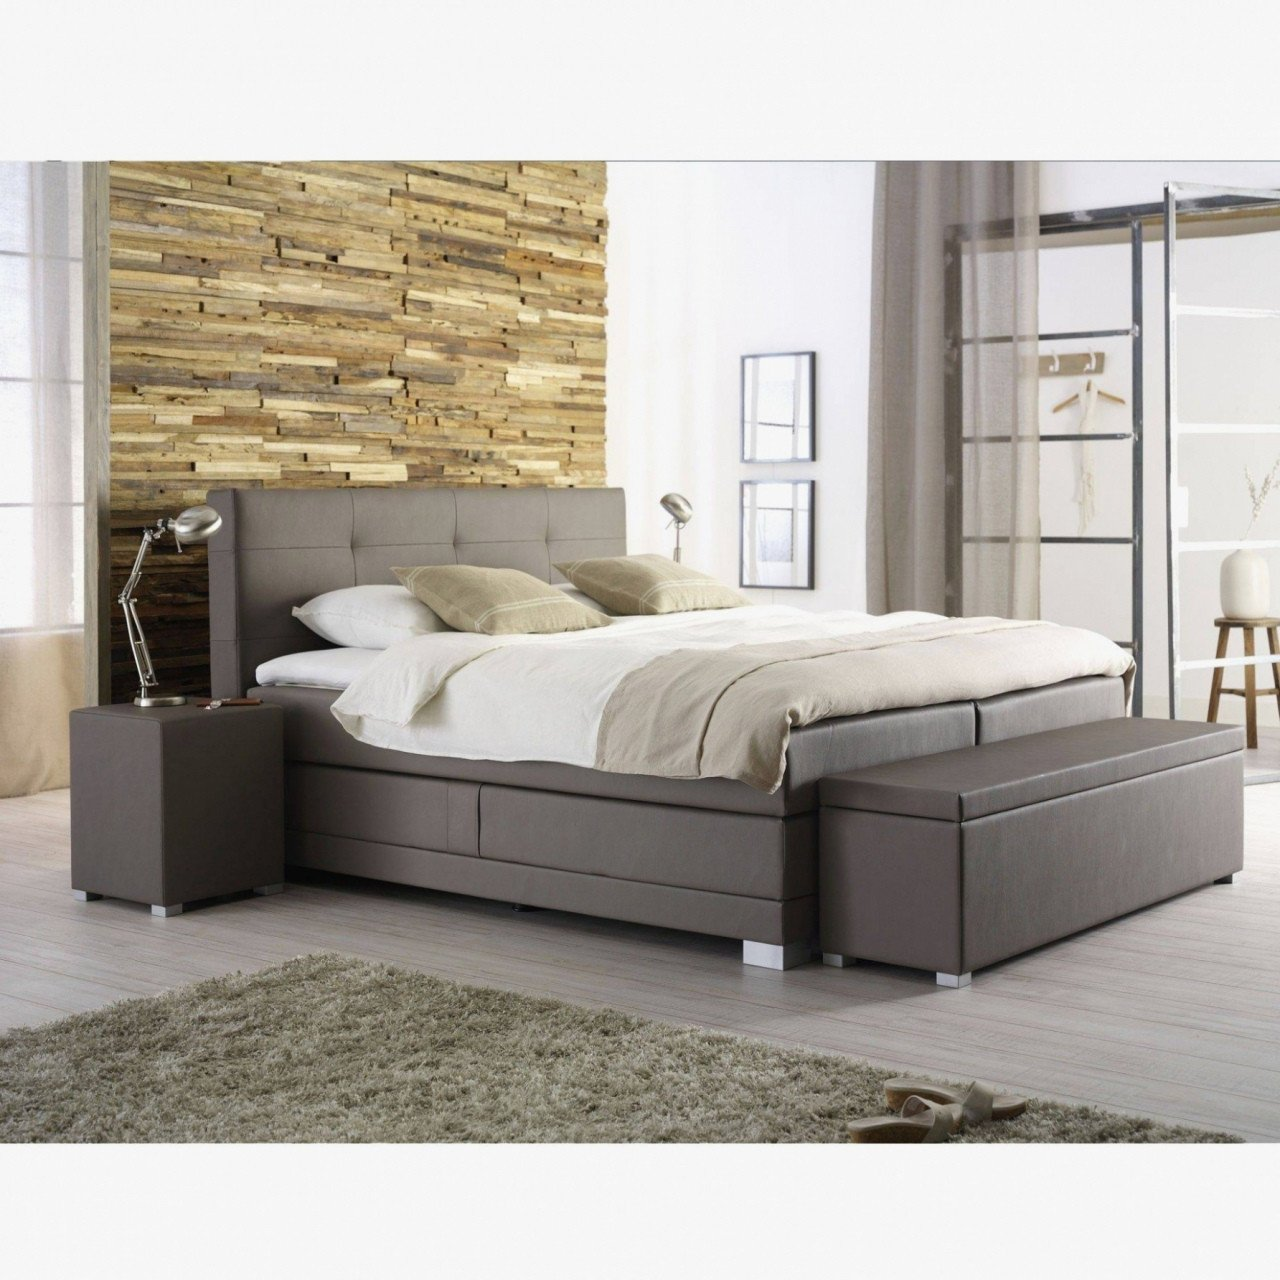 White and Gold Bedroom Set Best Of Drawers Under Bed — Procura Home Blog